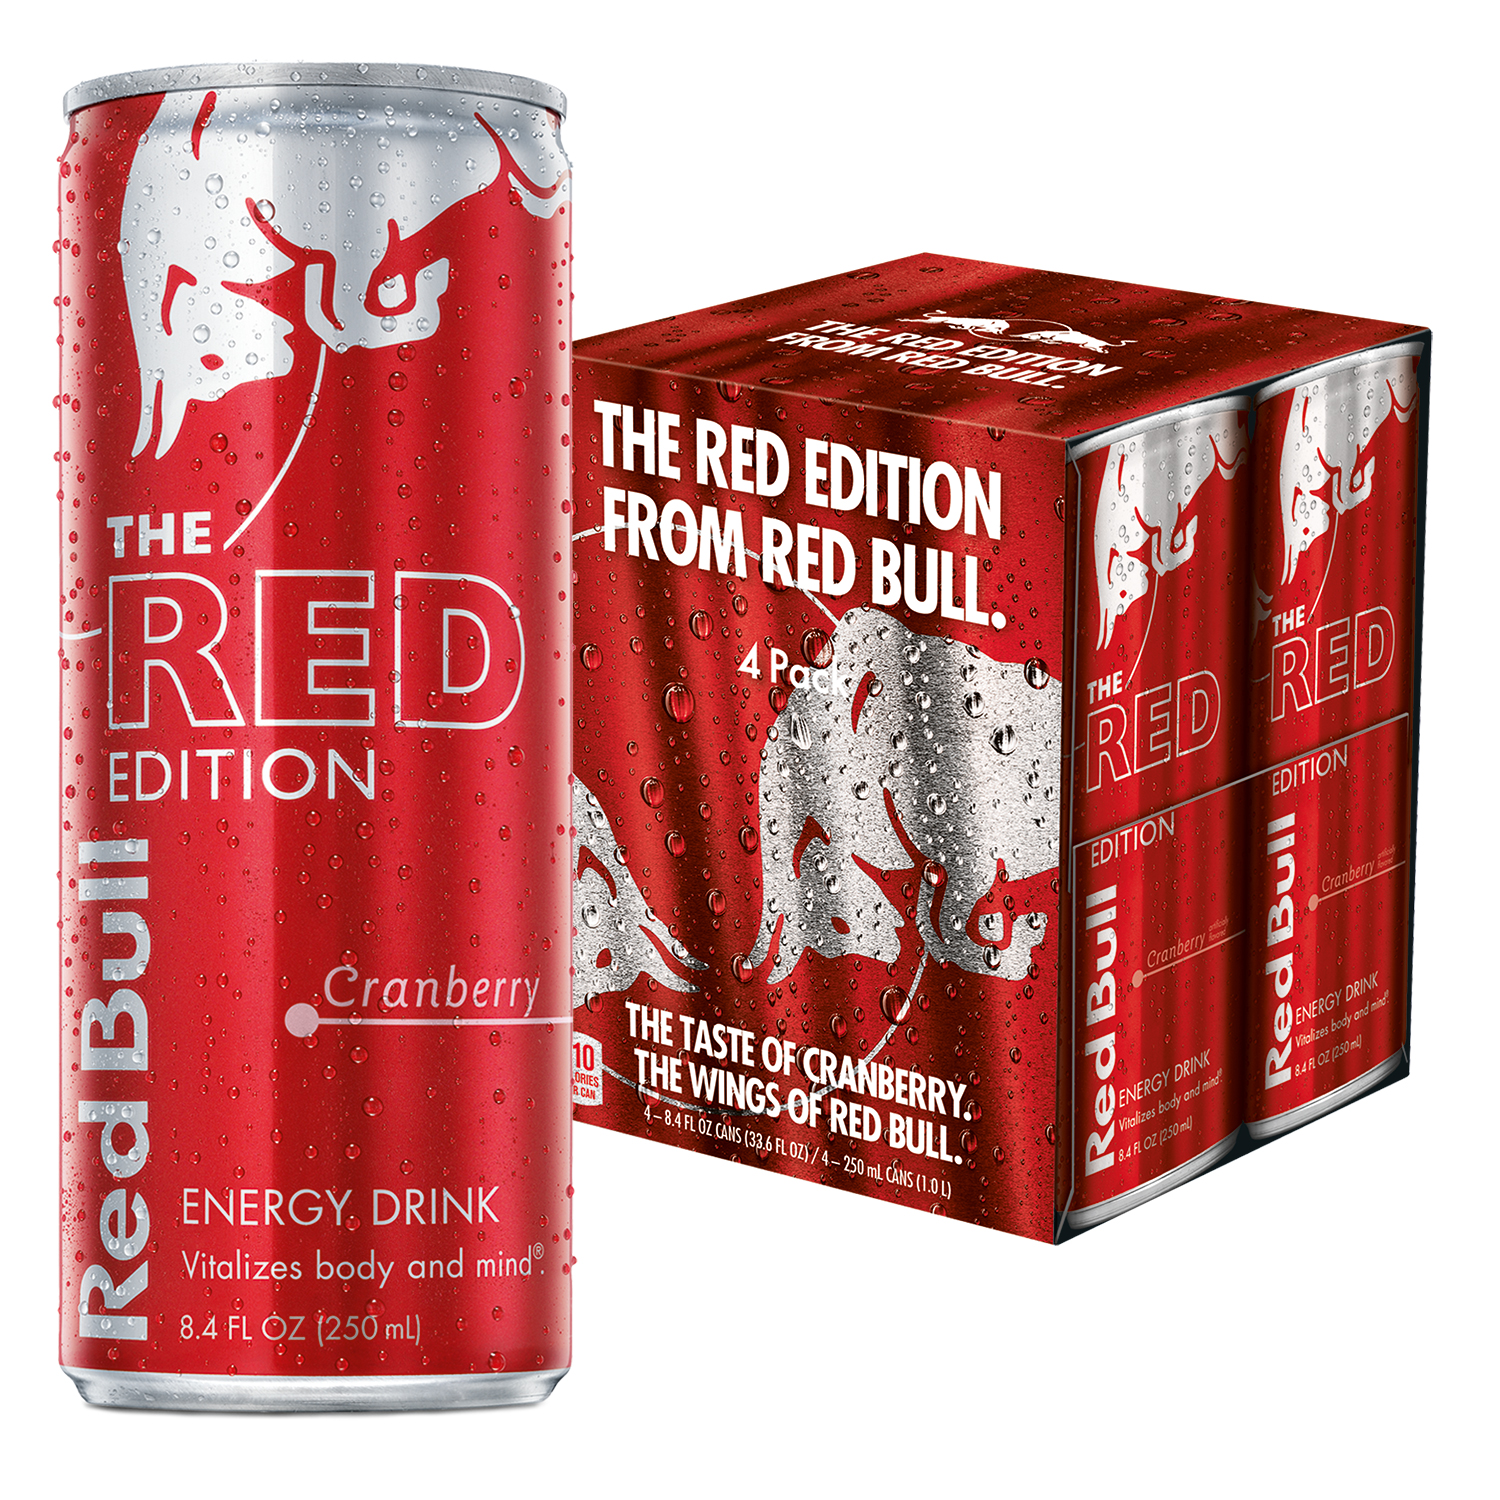 Red Bull Red Edition, Cranberry Energy Drink, 8.4 Fl Oz Cans, 4 Pack